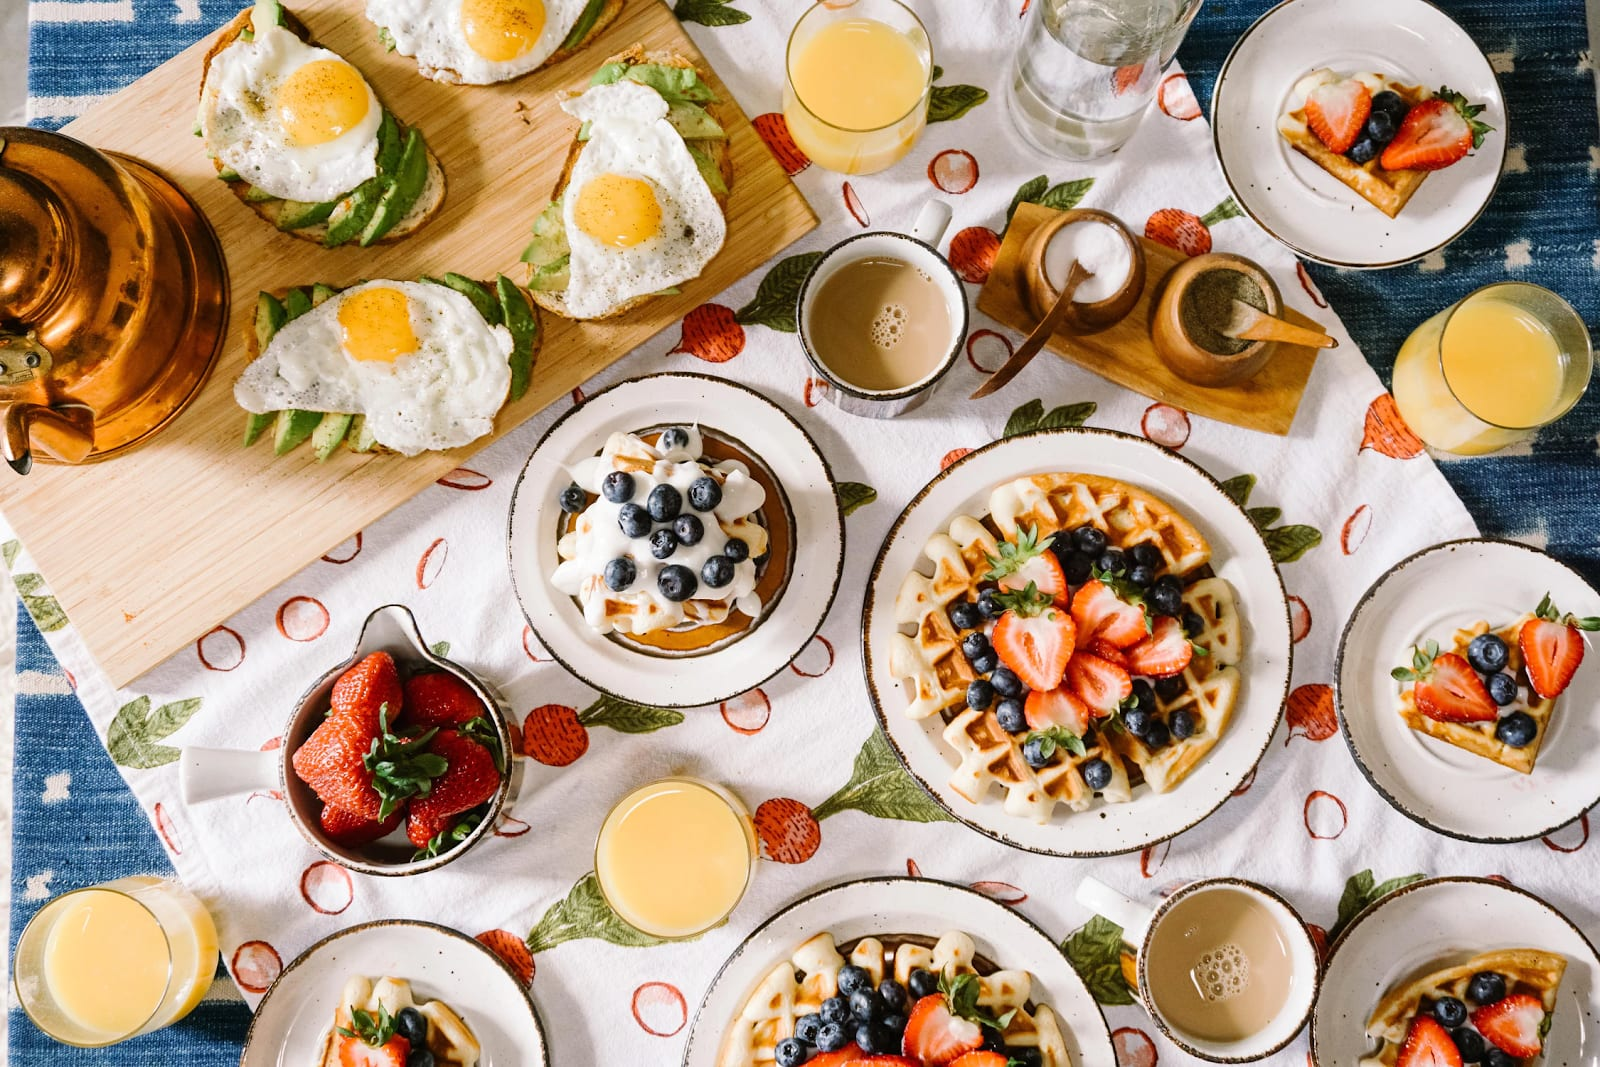 14 Best Brunch Spots in Nashville